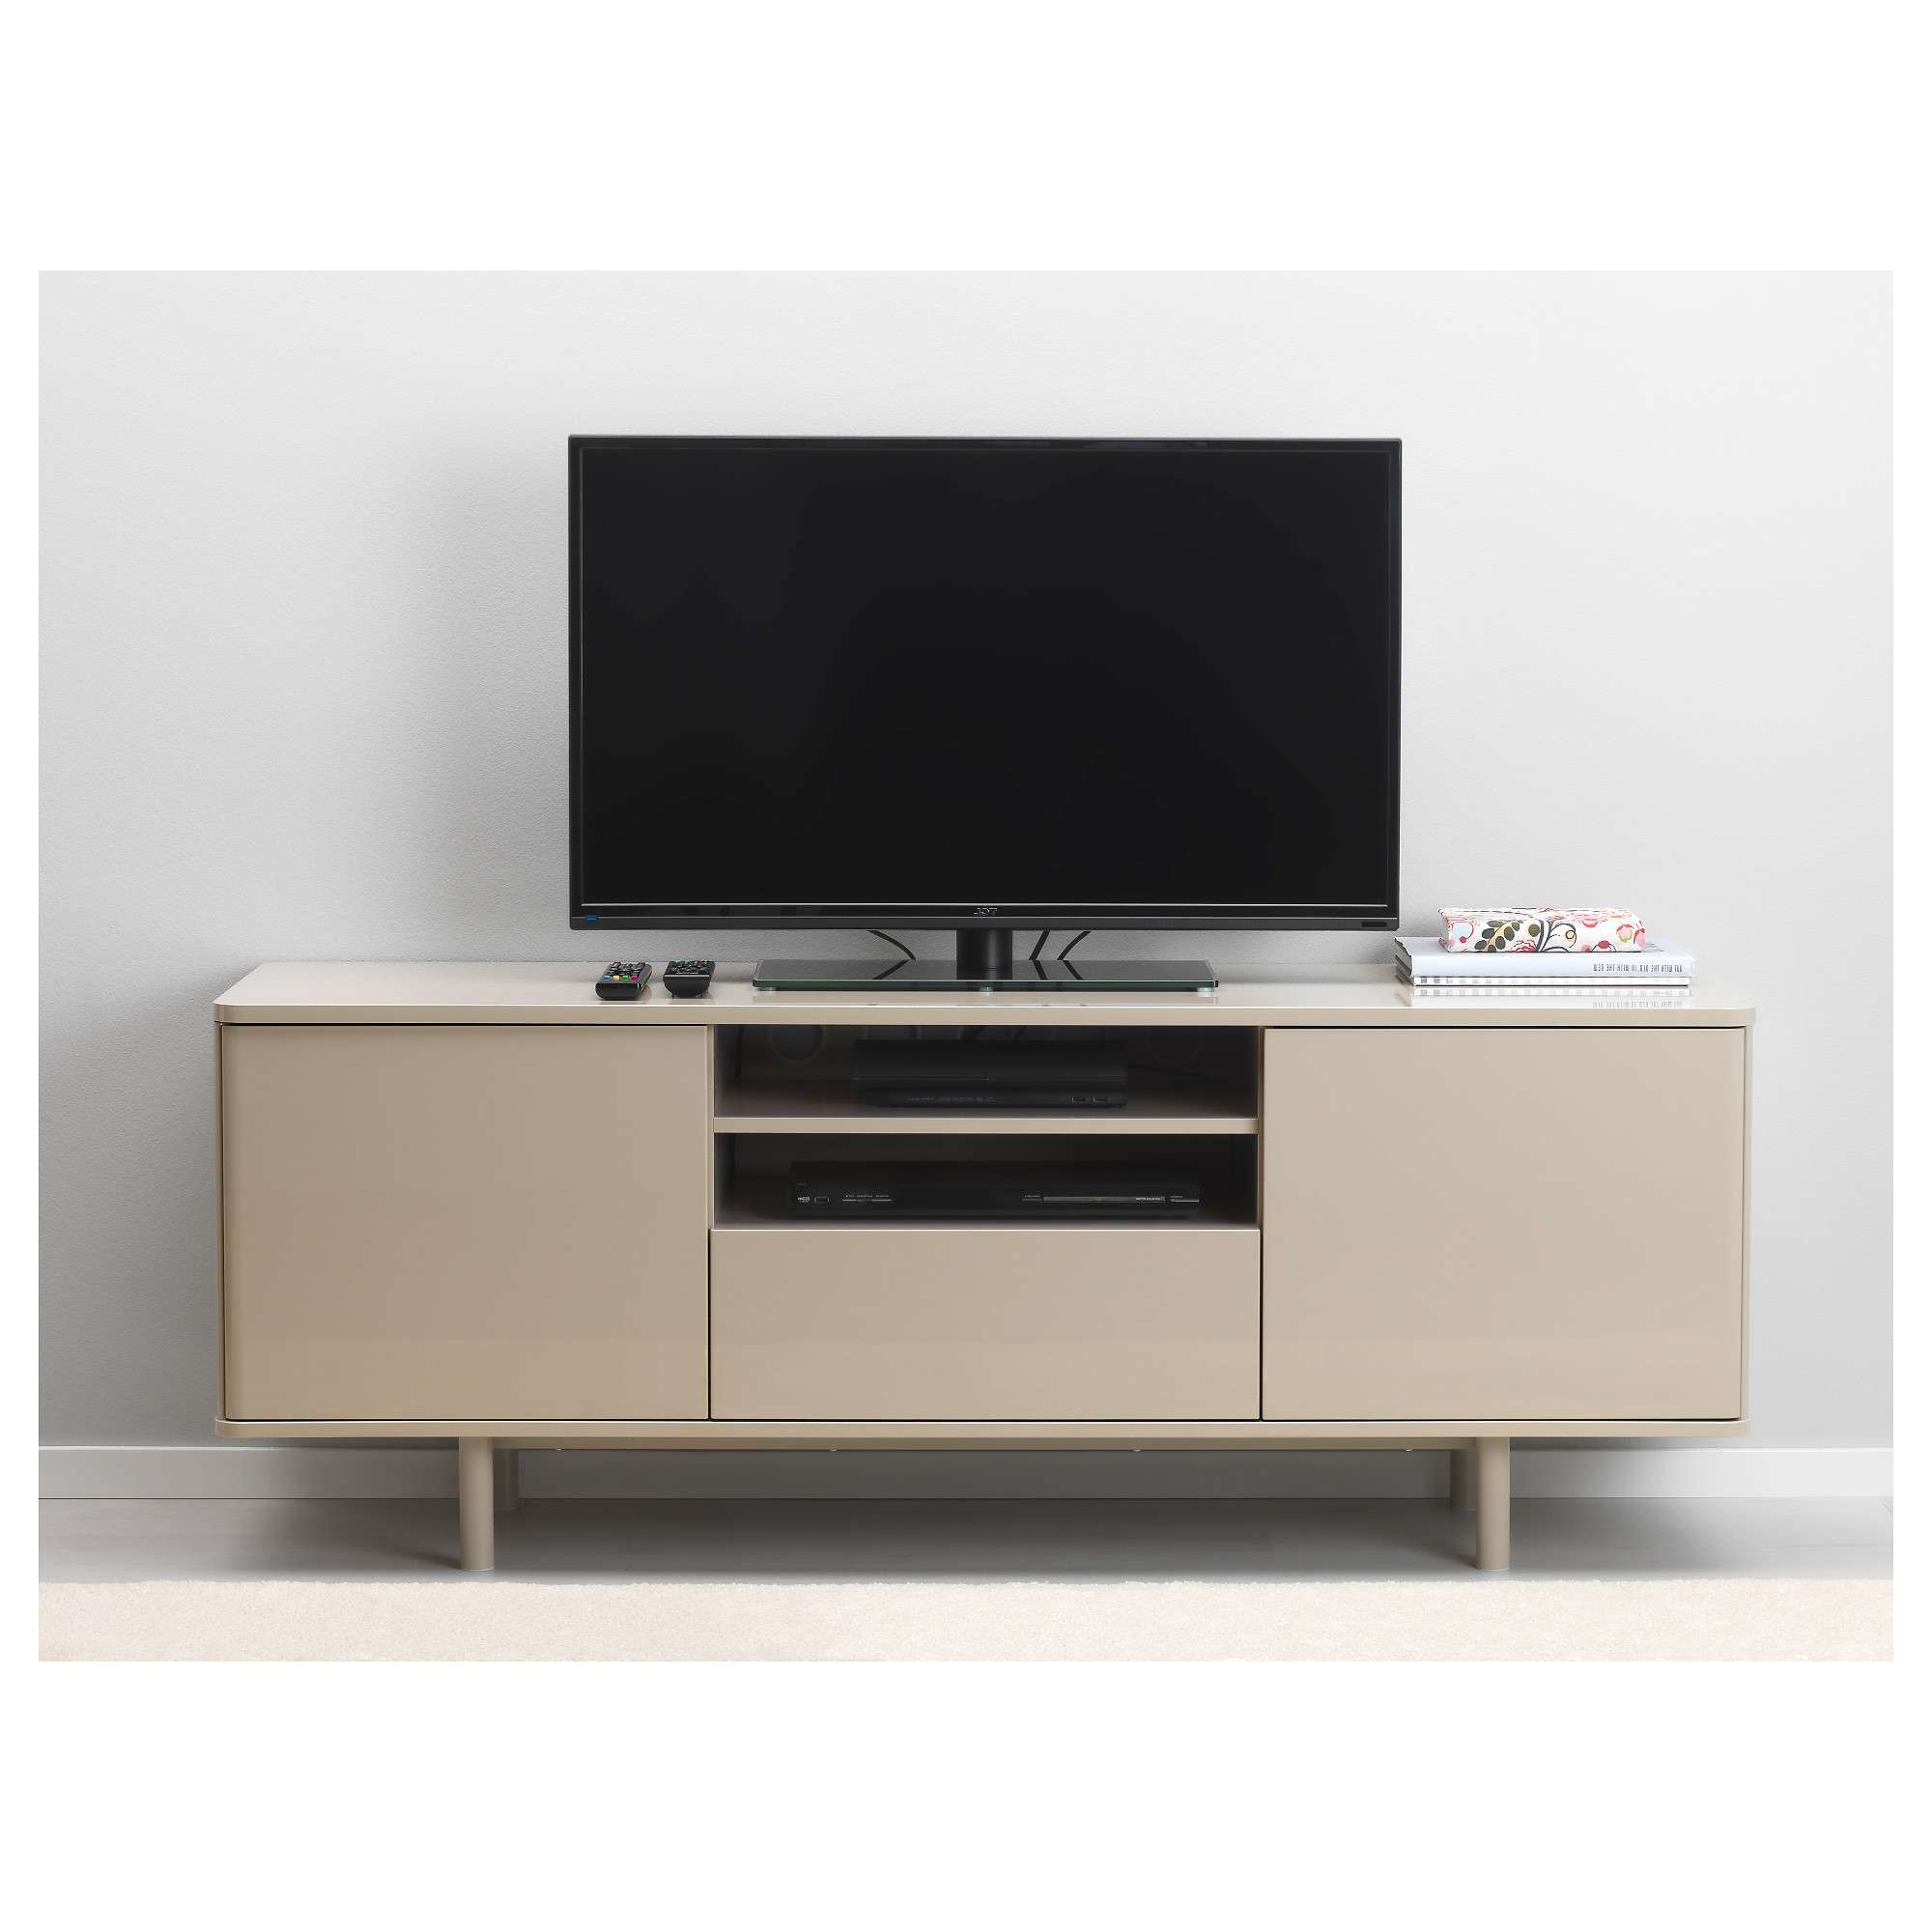 Mostorp Tv Bench Beige 159X46 Cm – Ikea Inside Bench Tv Stands (View 13 of 15)